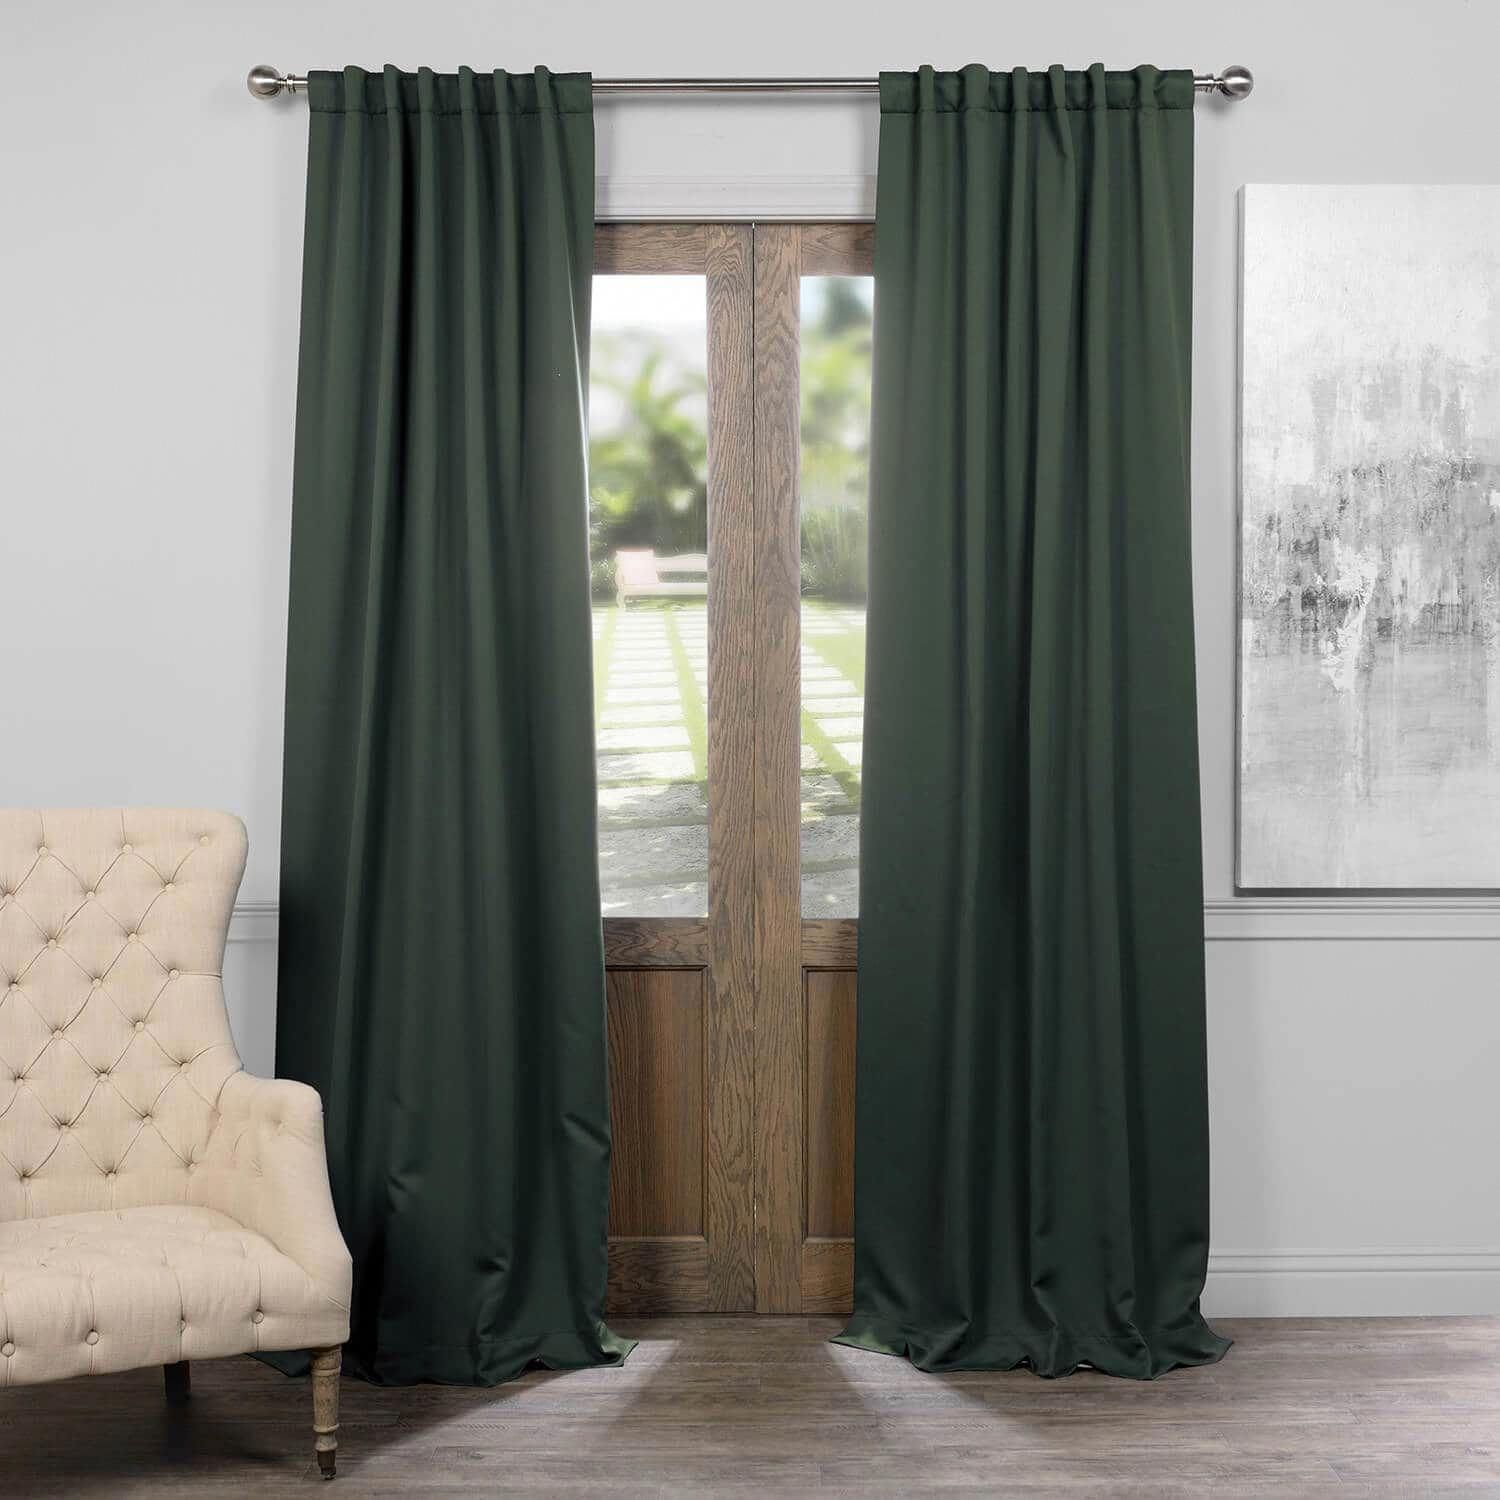 Best Curtains For Kids Rooms Creative Curtain Ideas For Style And Comfort With Images Half Price Drapes Curtains Panel Curtains